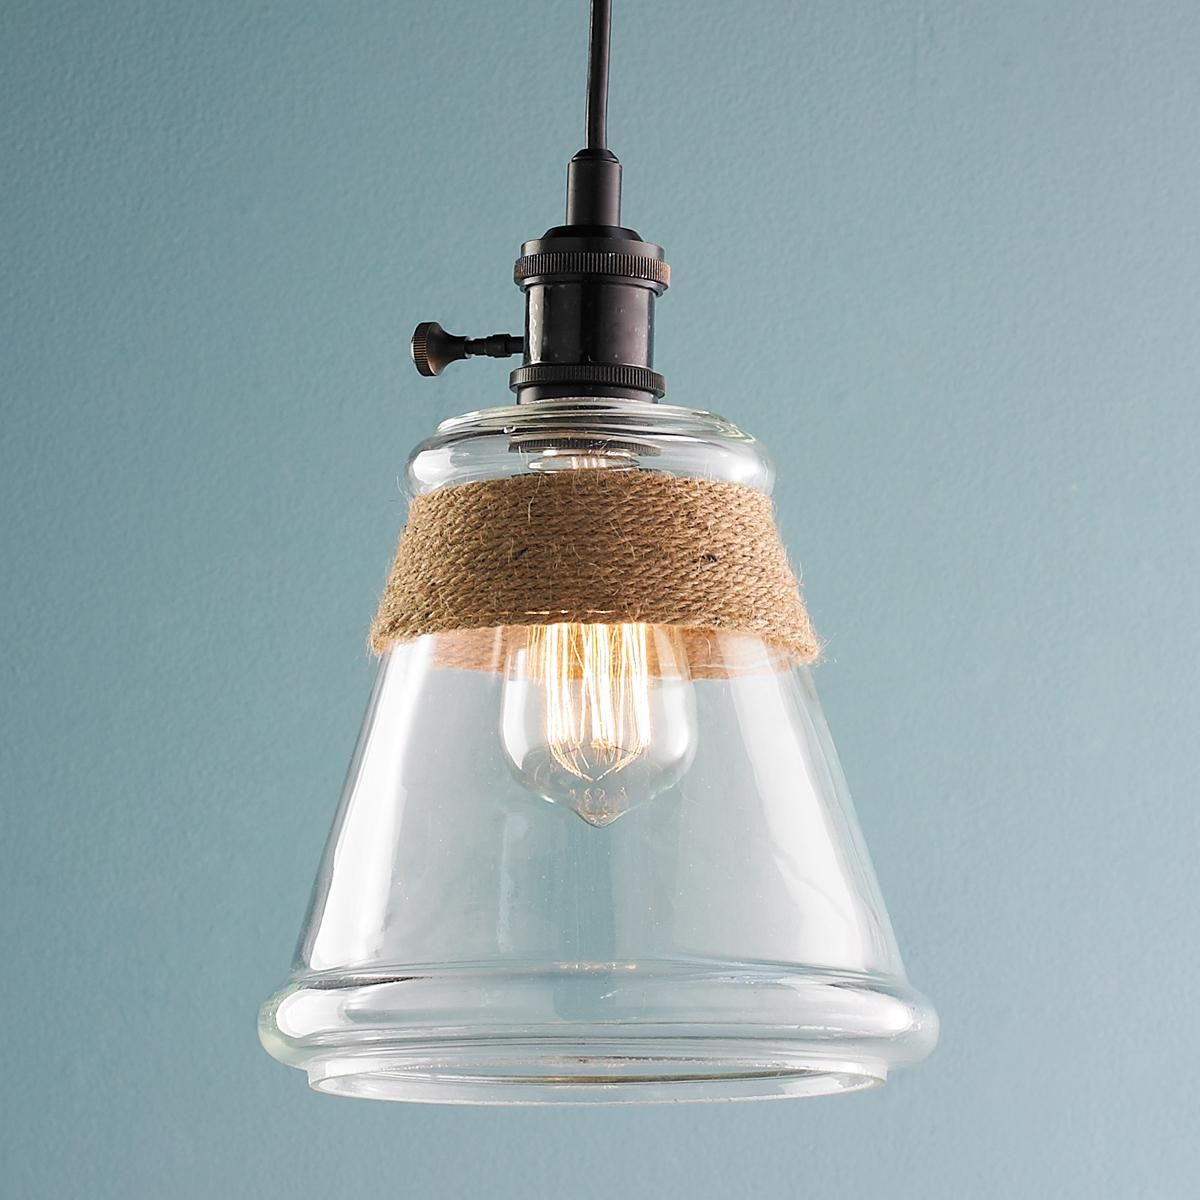 Clear Glass Rope Pendant Light Rope Pendant Light Glass Pendant Light Glass Pendant Shades